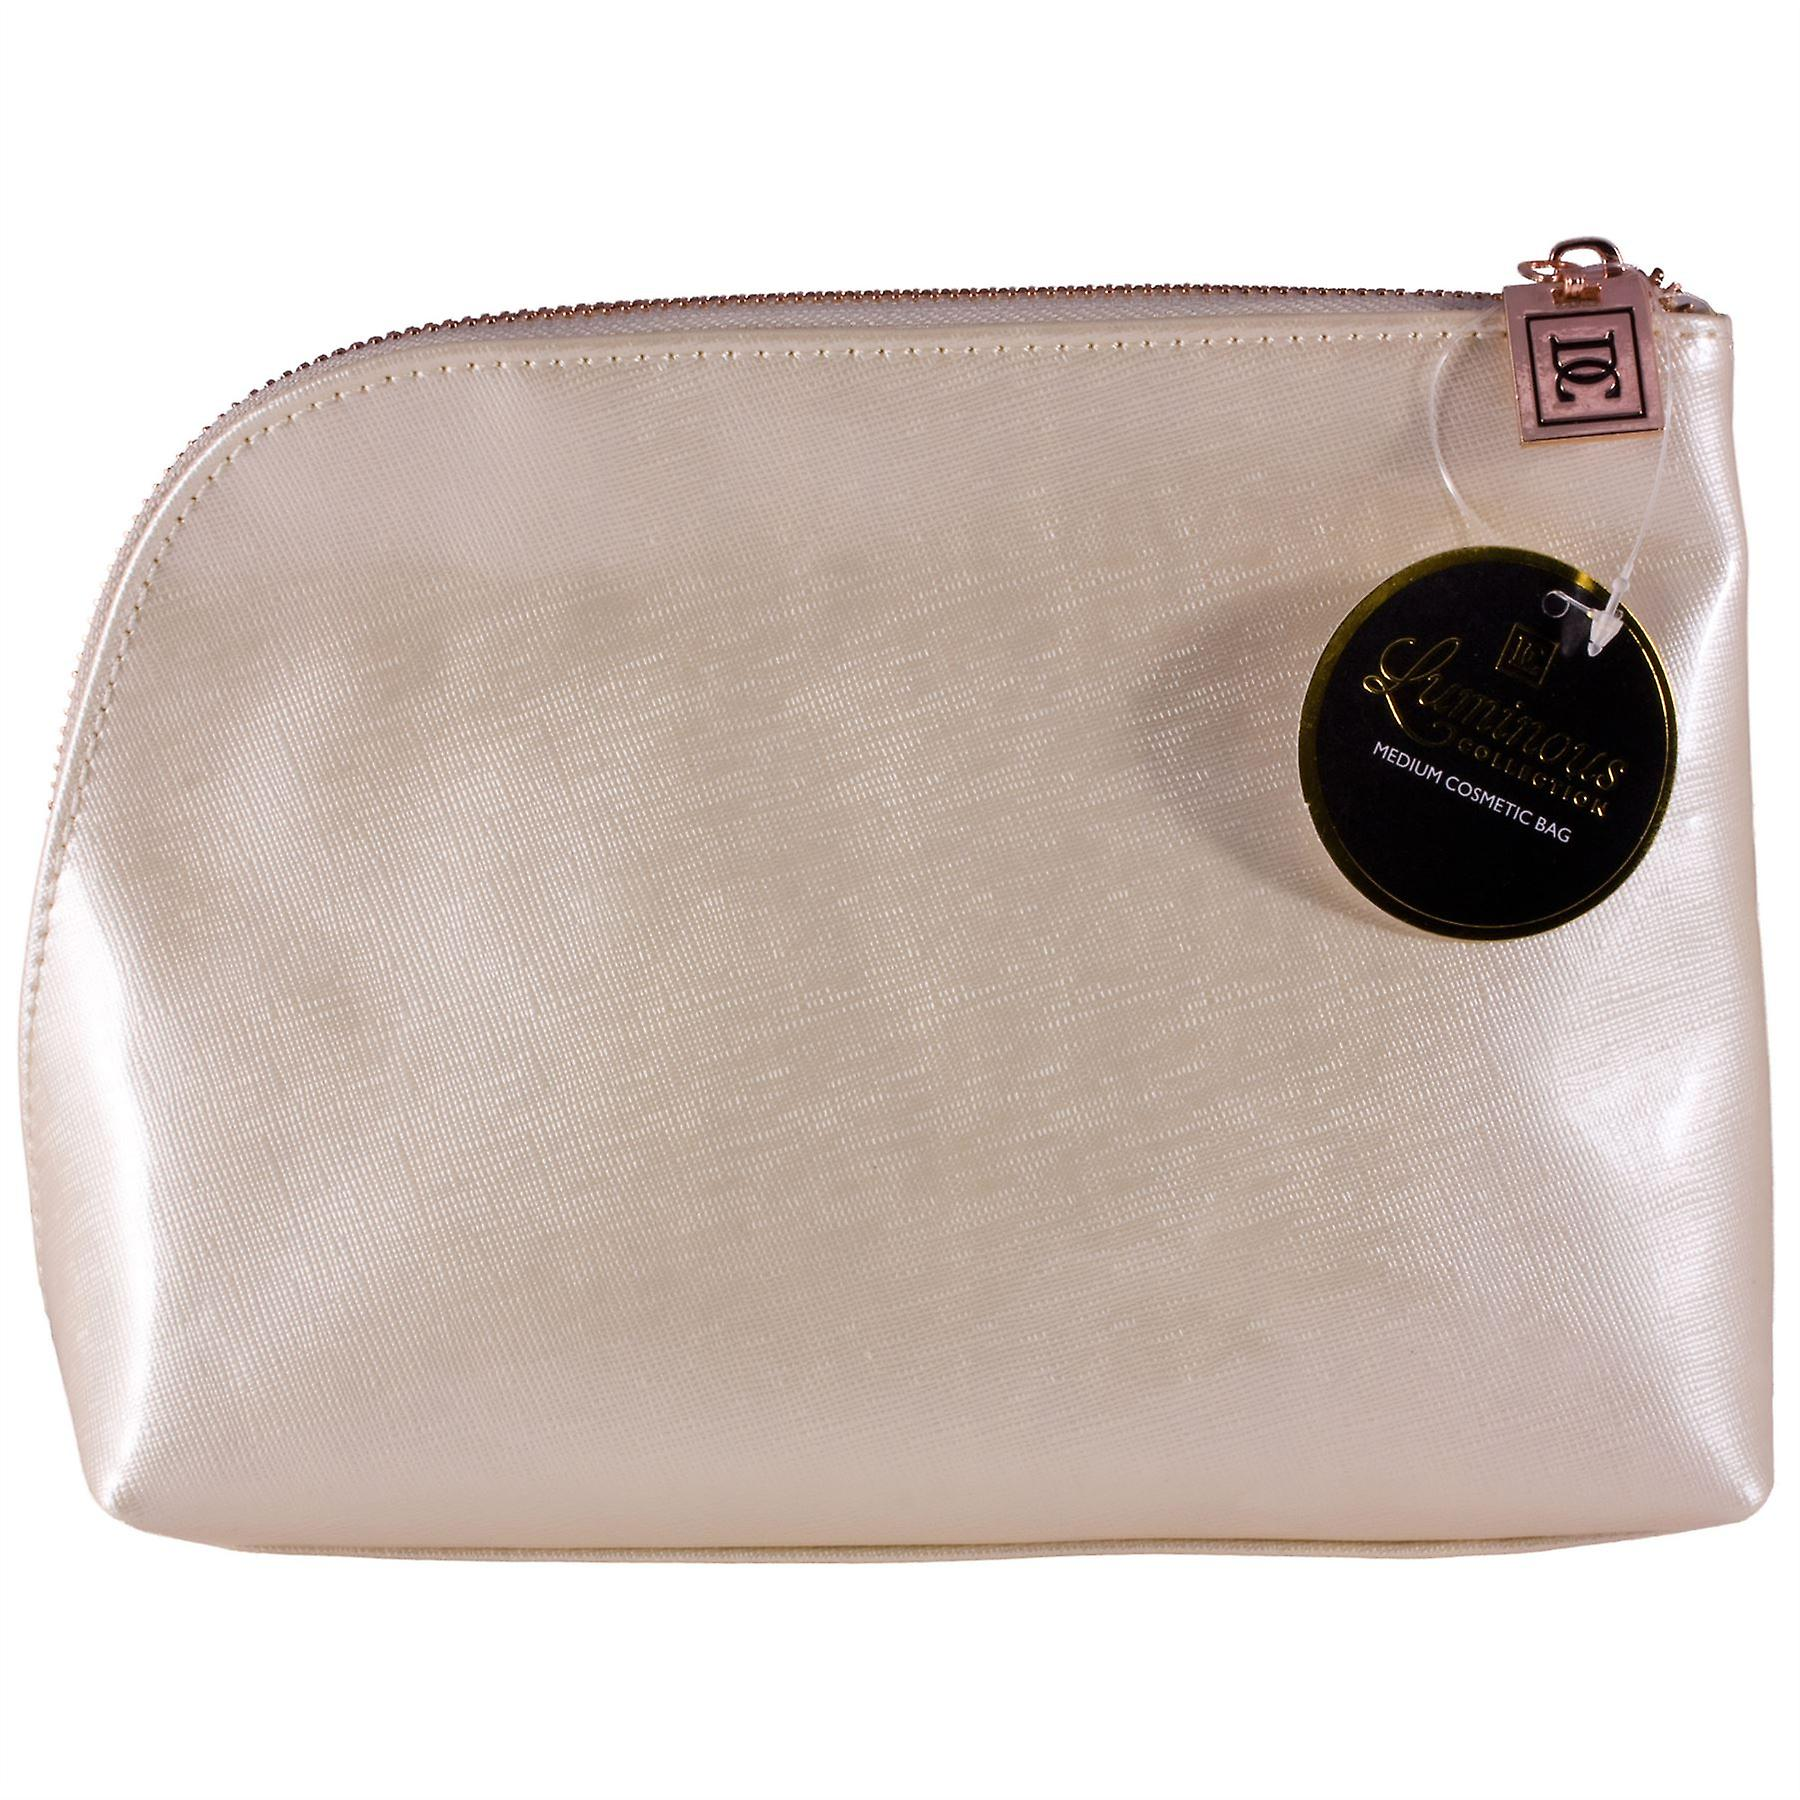 Danielle Creations Luminous Collection Medium Size Makeup Bag - Cream